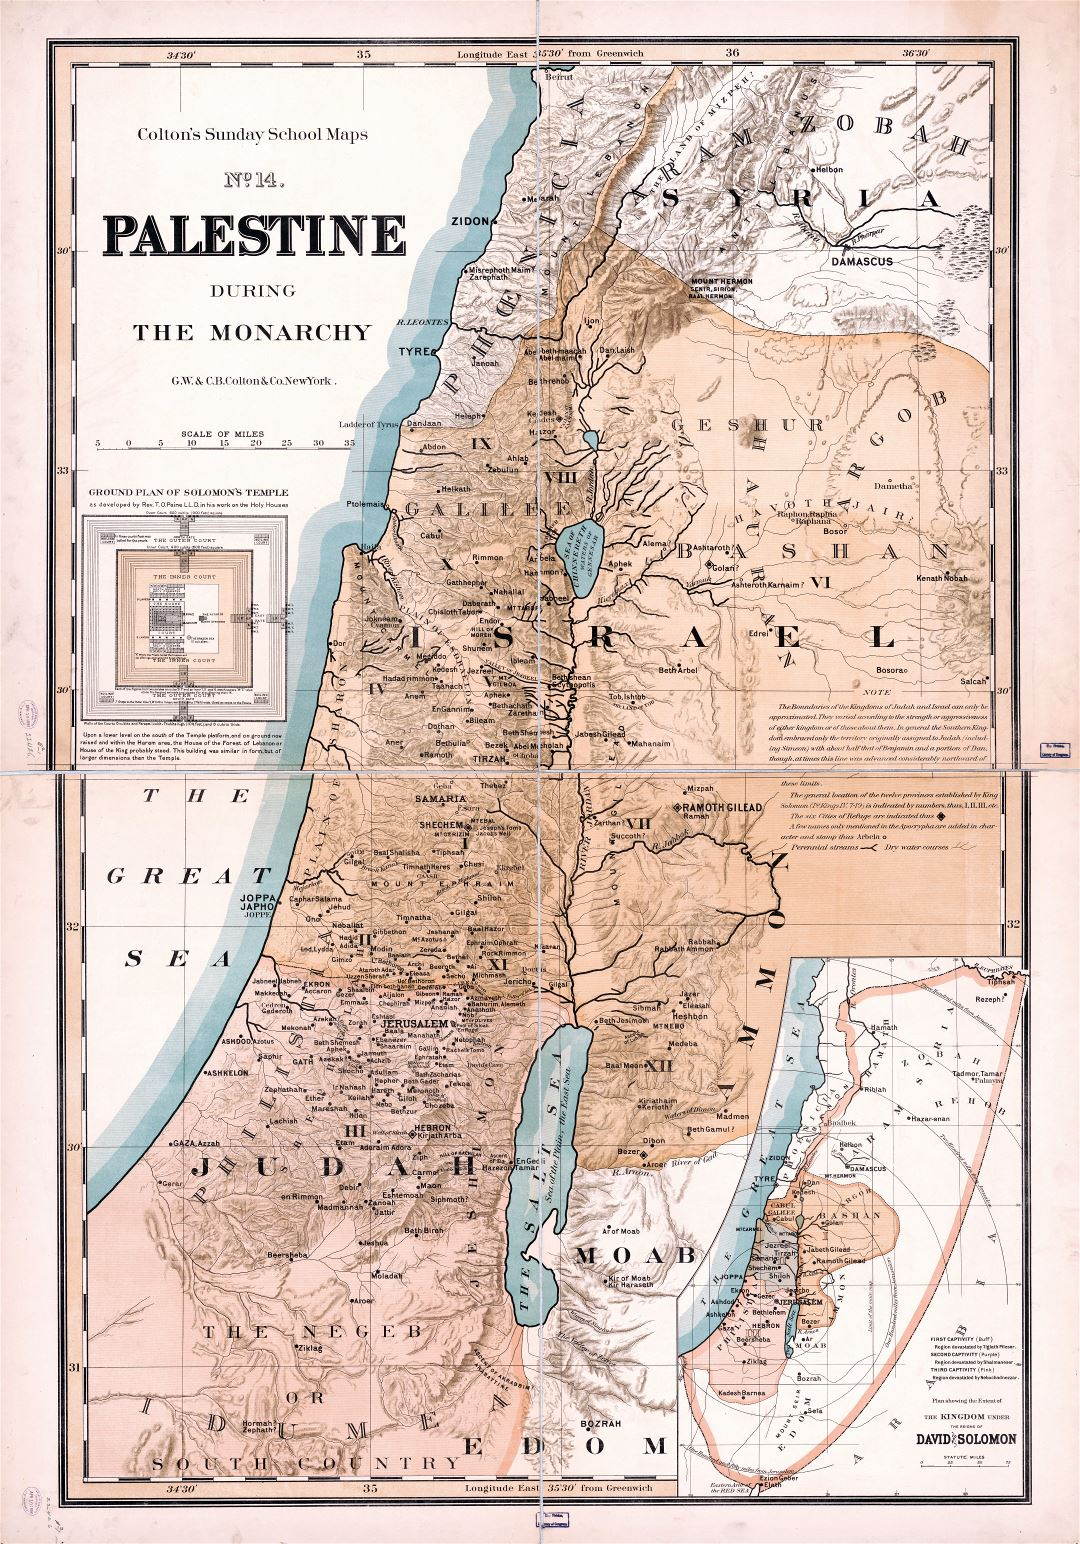 Large scale detailed old map of Palestine during the monarchy - 1895